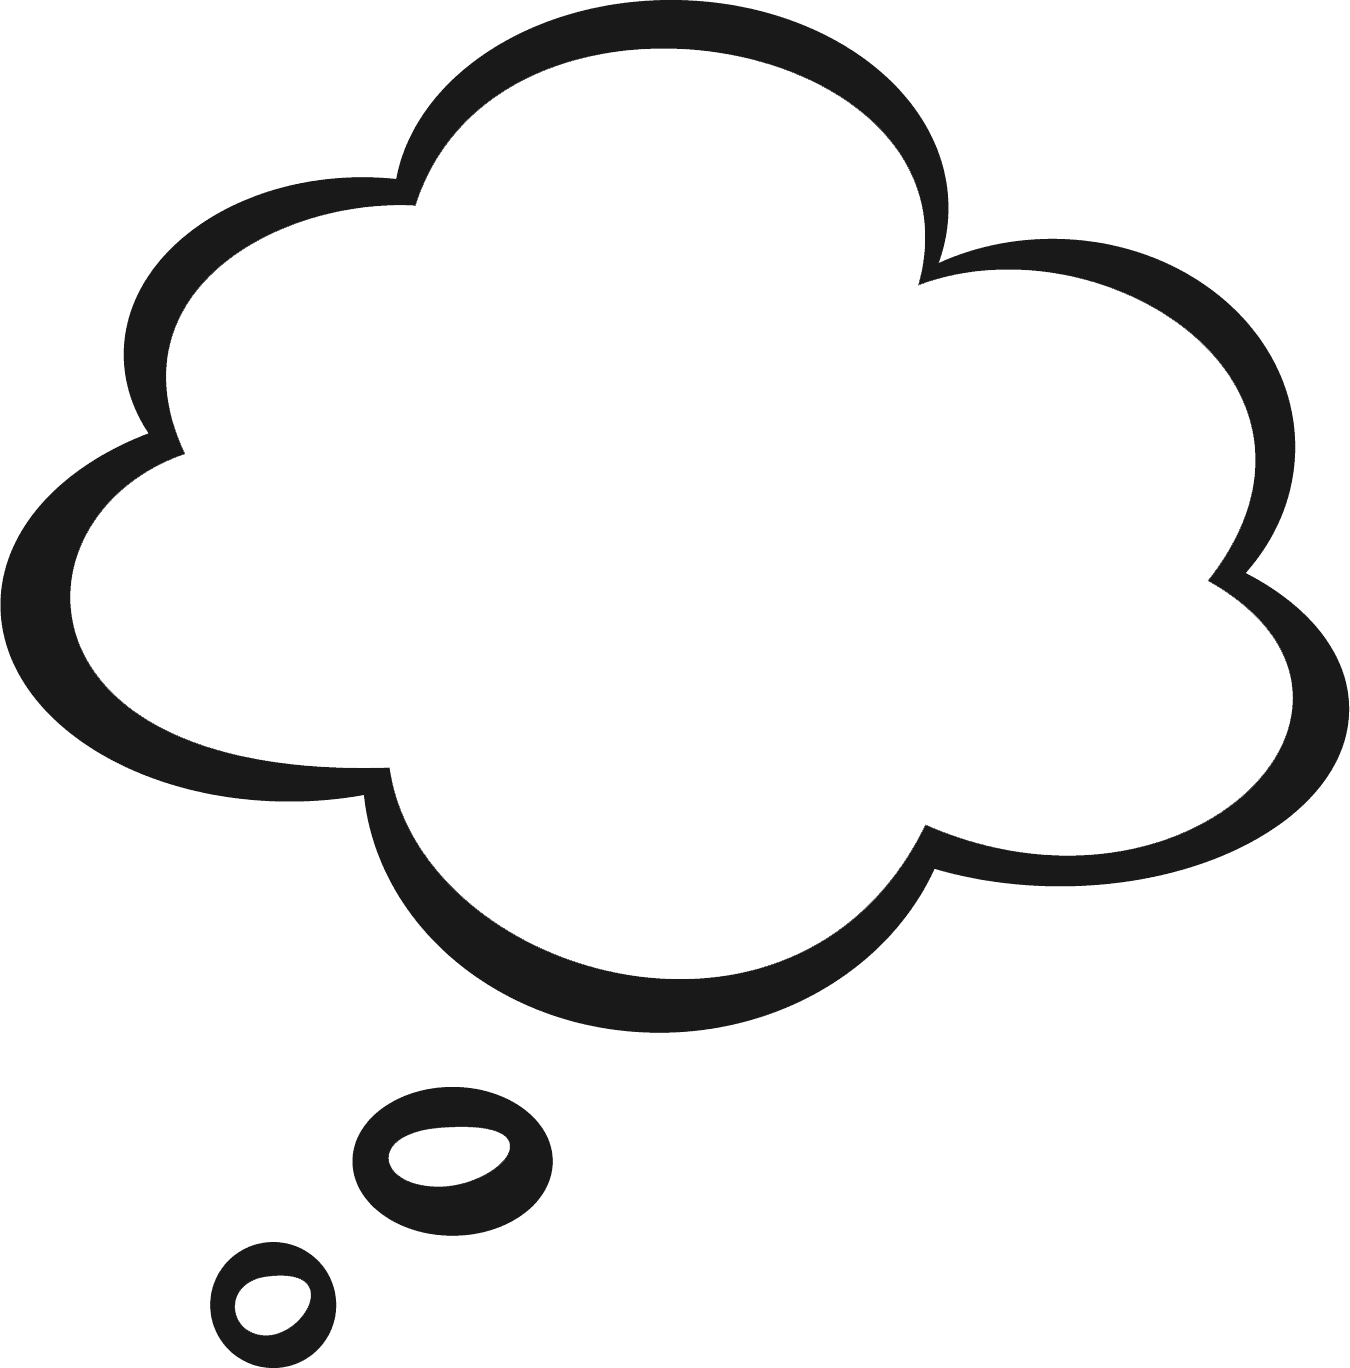 Clouds Clipart Black And White   Free download on ClipArtMag